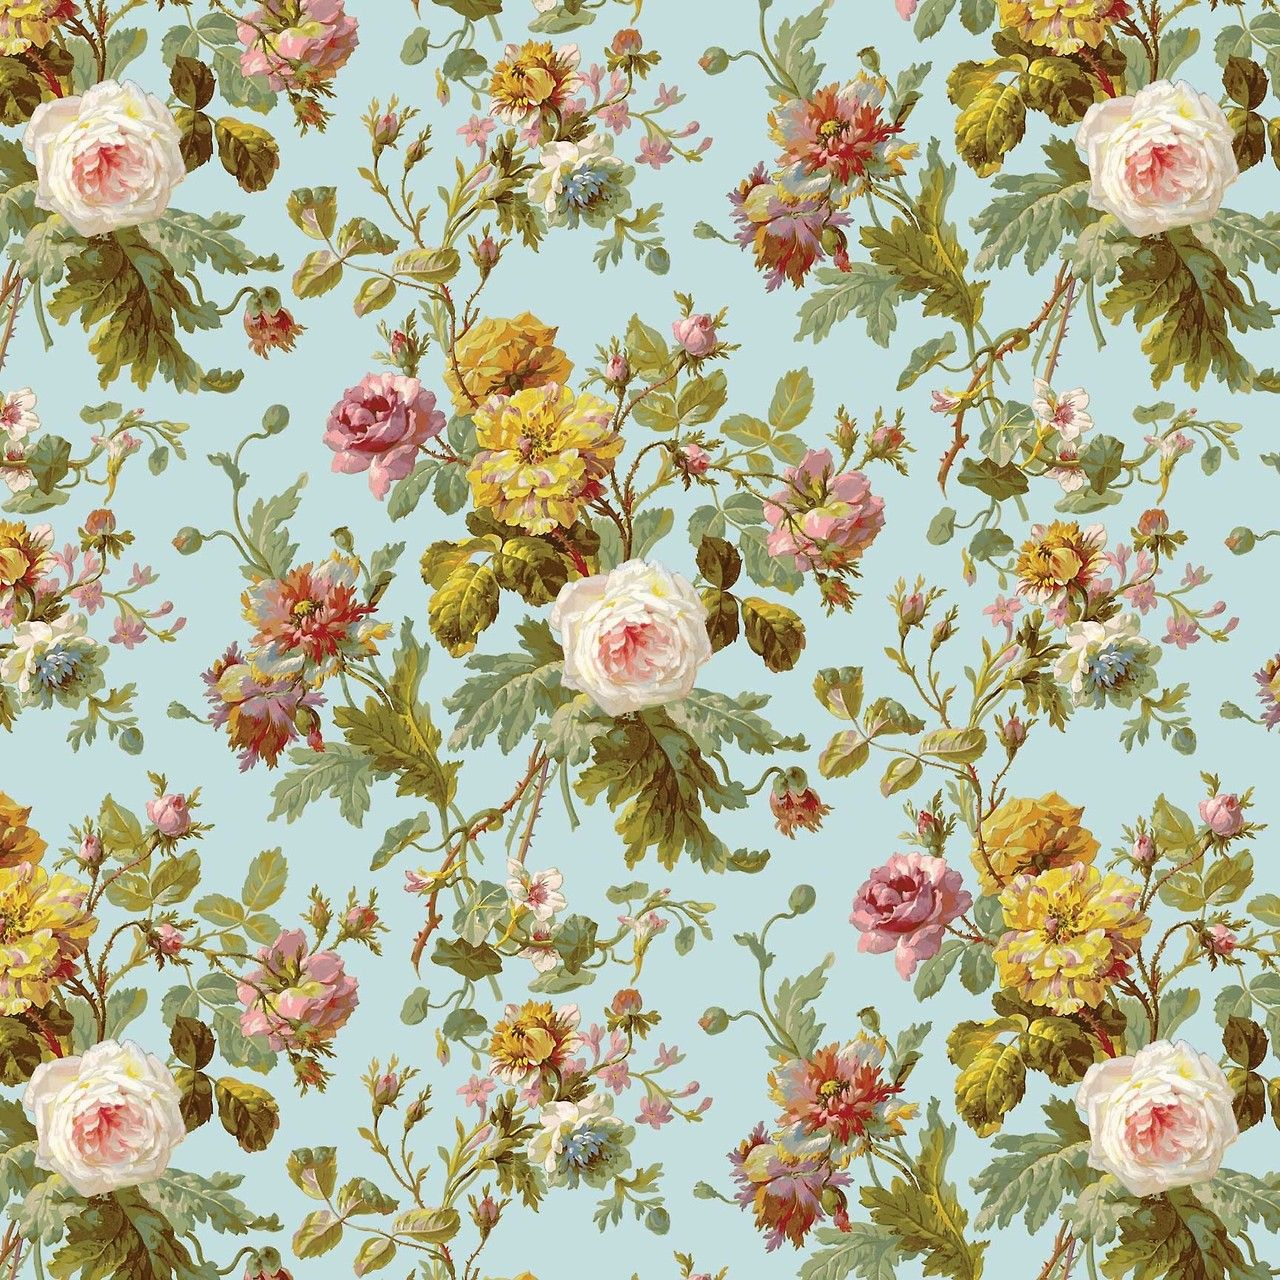 Vintage Floral Pattern Vintage Floral Wallpaper Pattern Cool